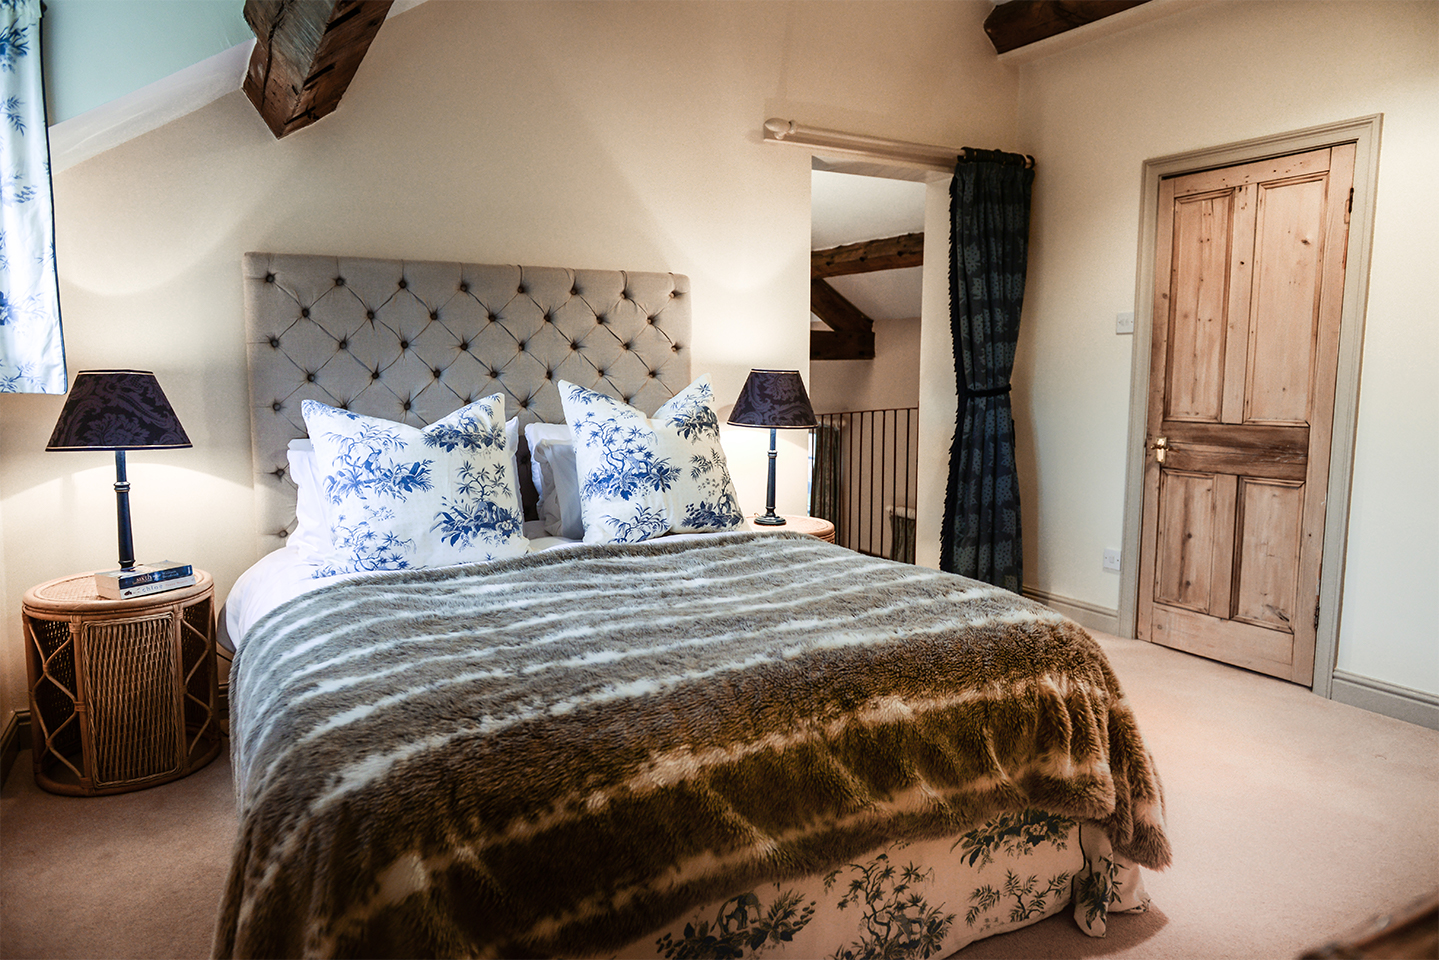 Stapleton Cottage offers contemporary luxury holiday accommodation at Combermere Abbey in Cheshire